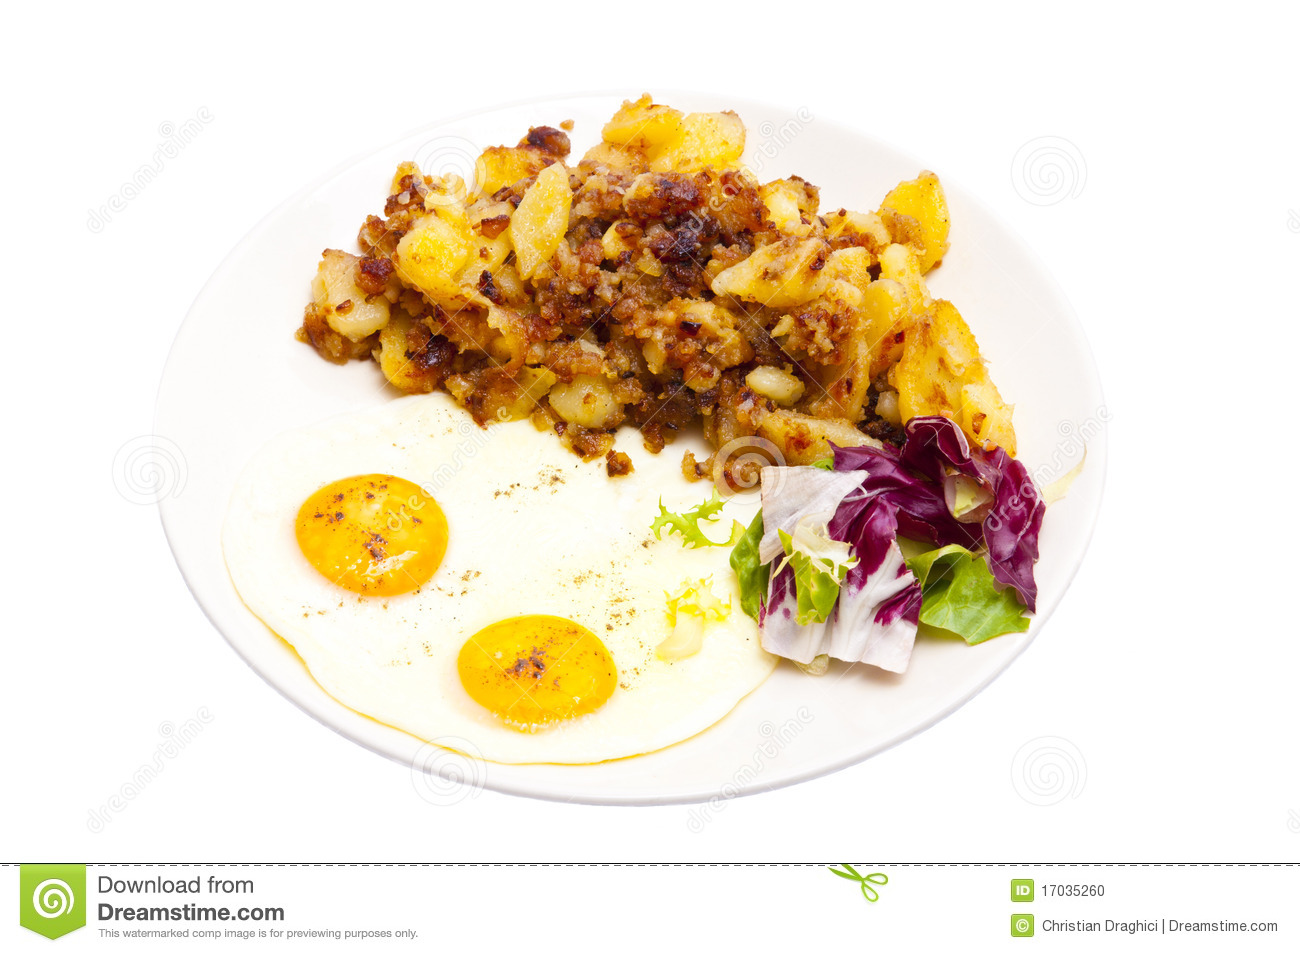 Homemade fried potatoes with eggs sunny side up and vegetables on a ...